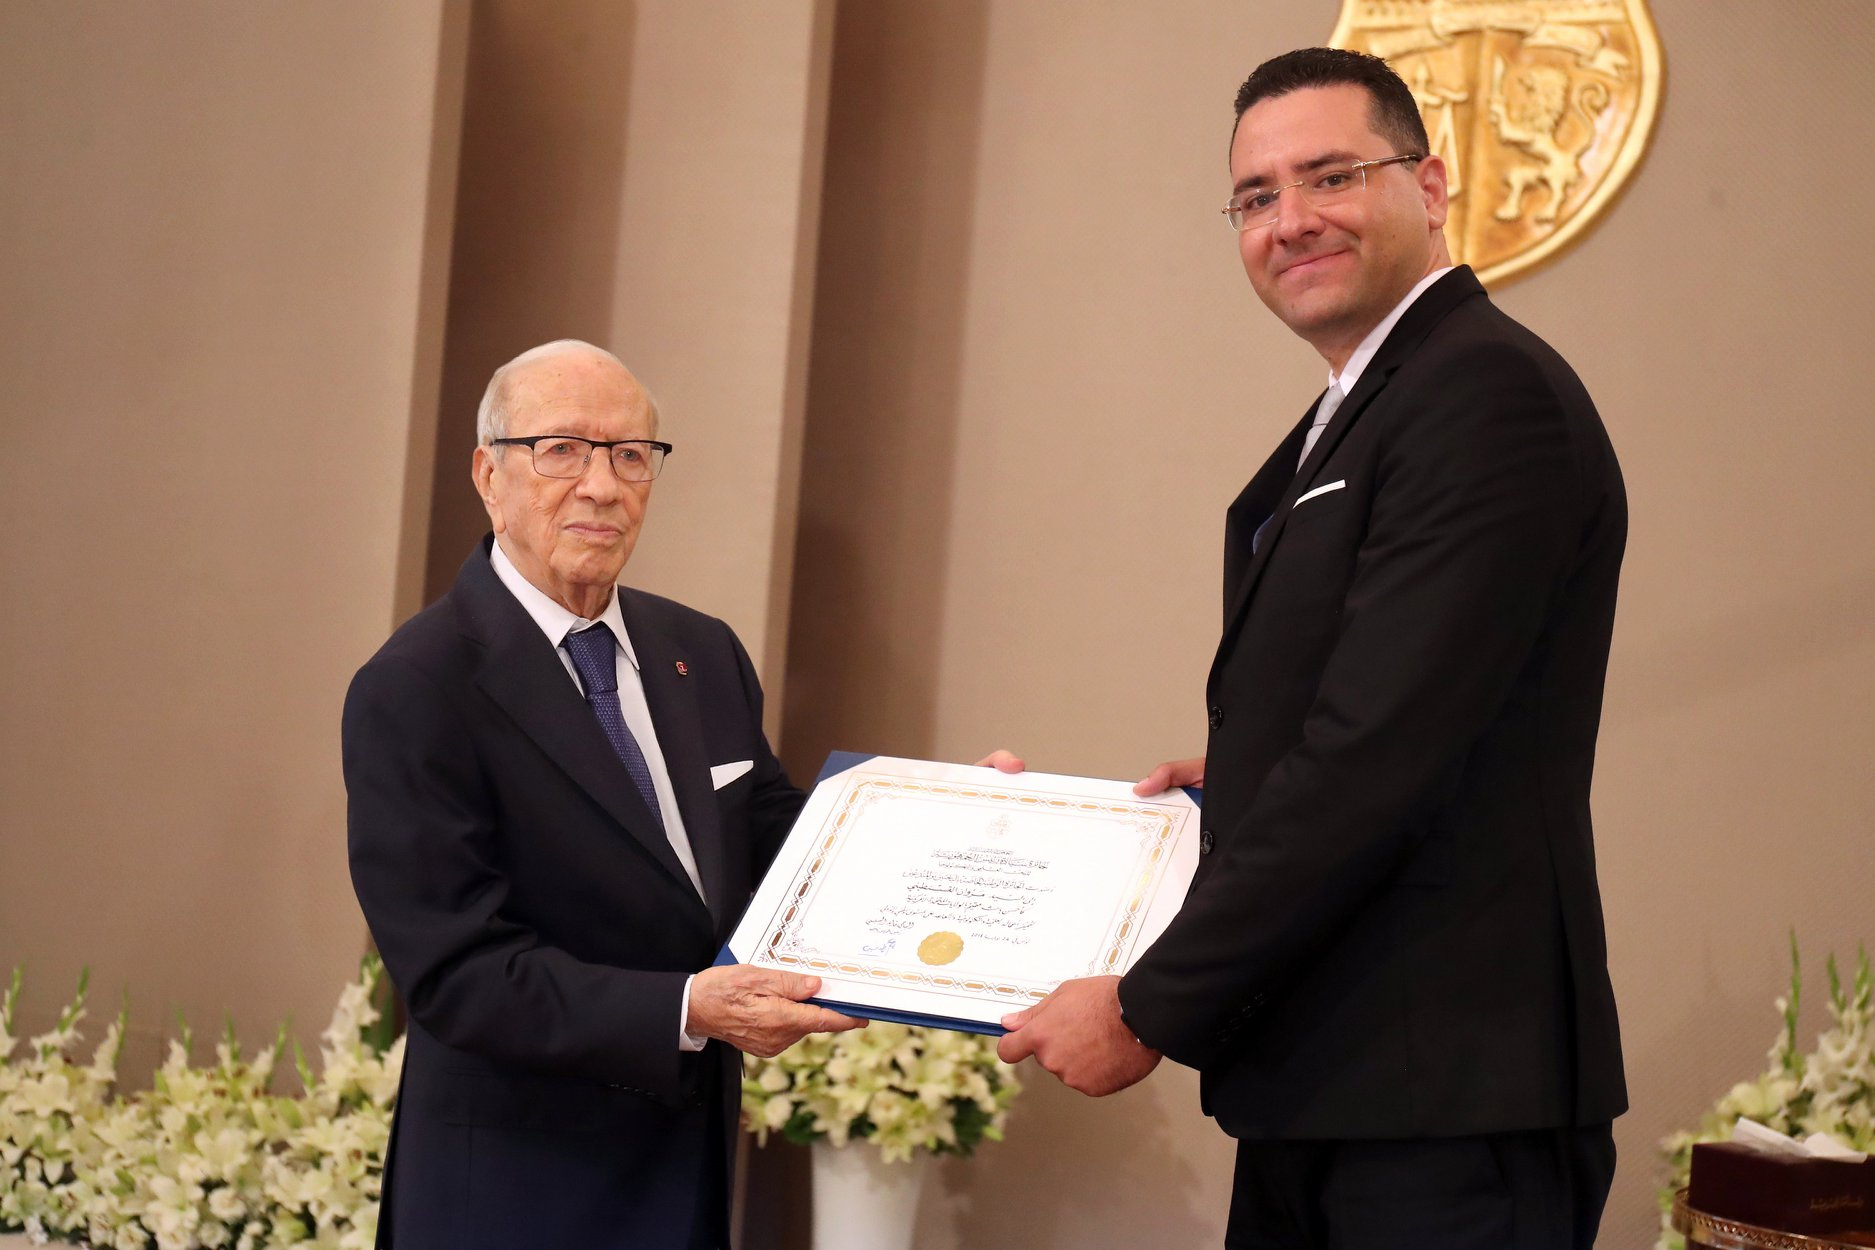 Dr. Kessentini received the prestigious 2018 President of Tunisia Distinguished Research Award